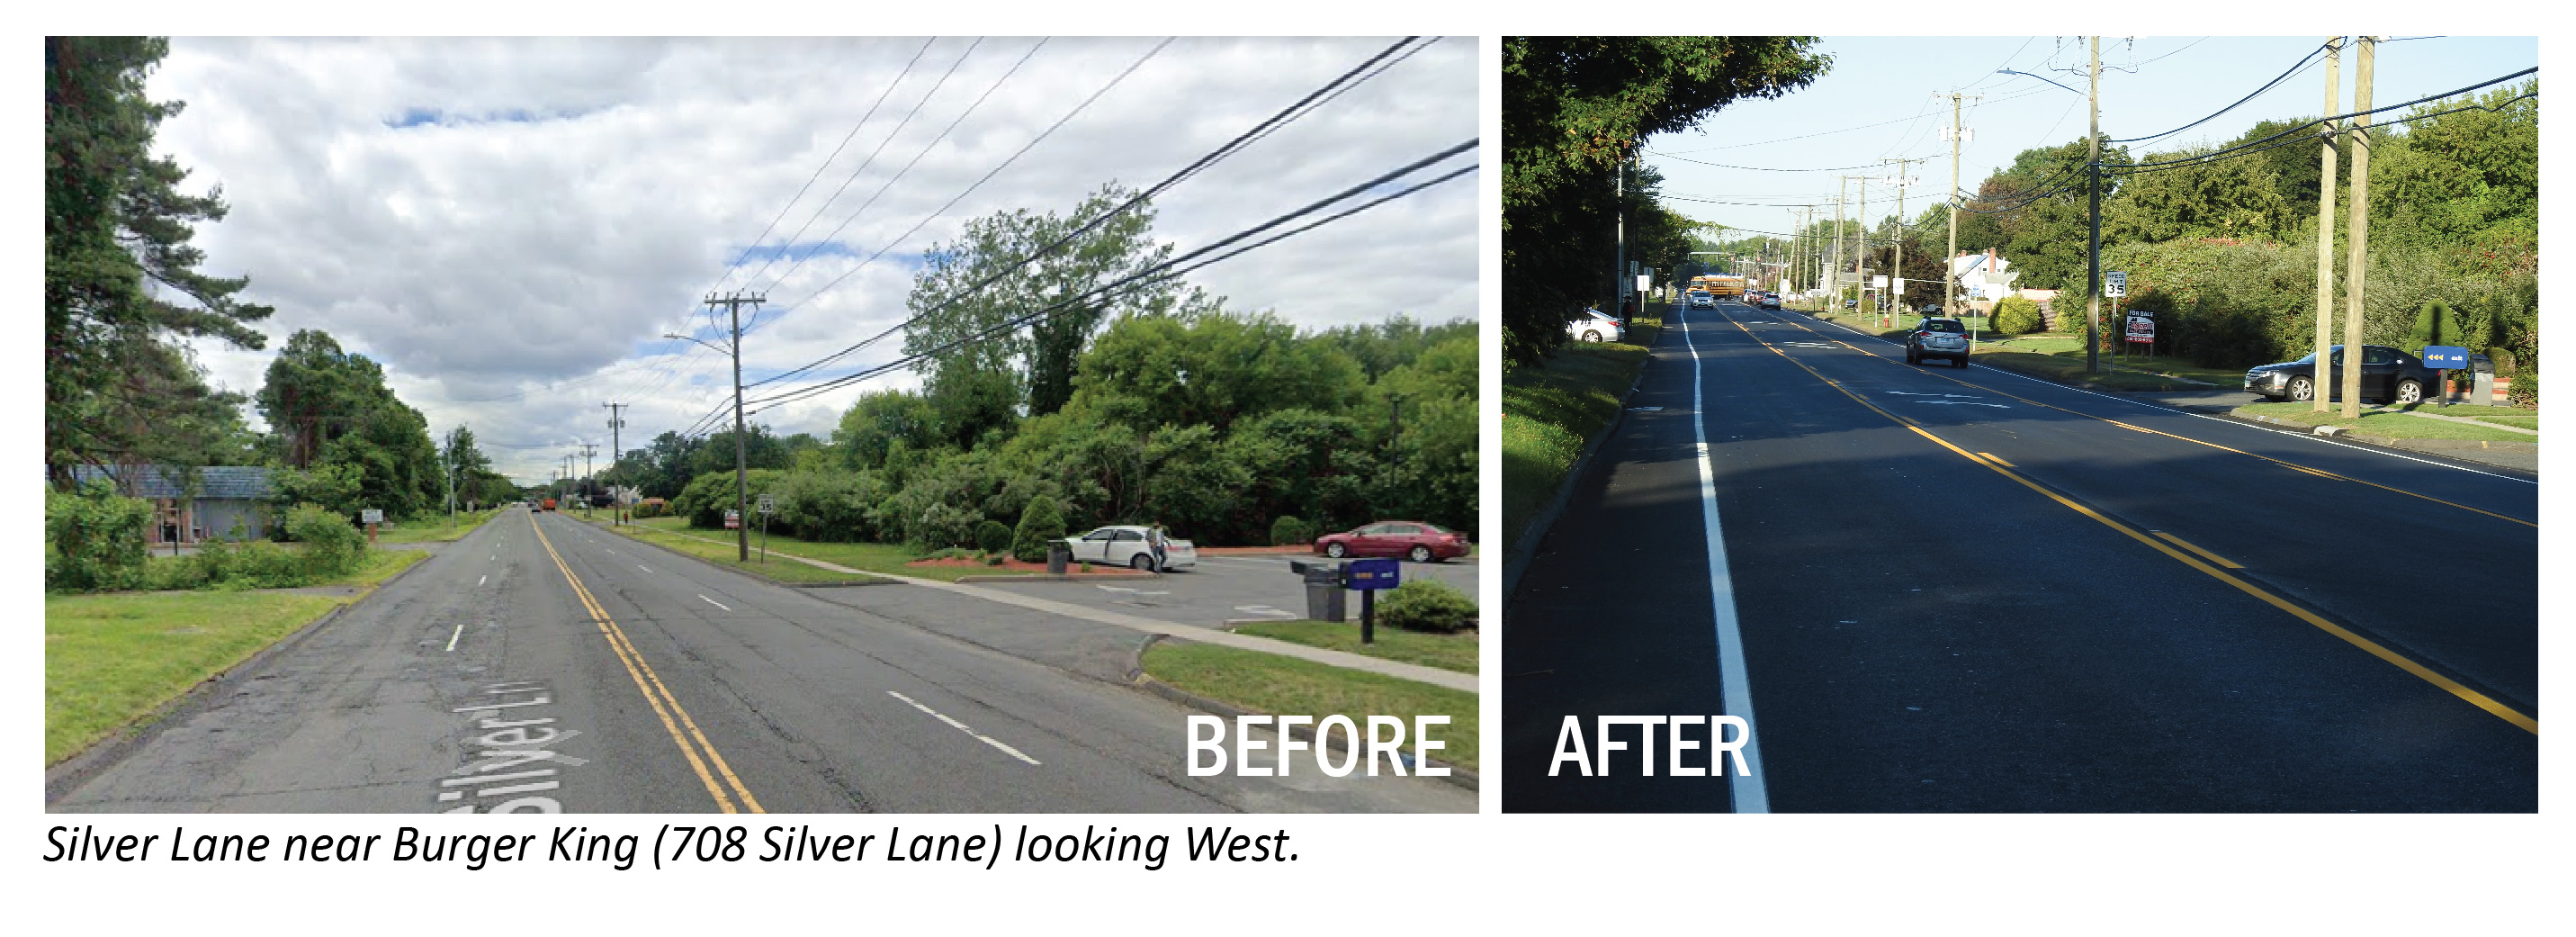 Before/After image of Silver Lane near Burger King looking west.